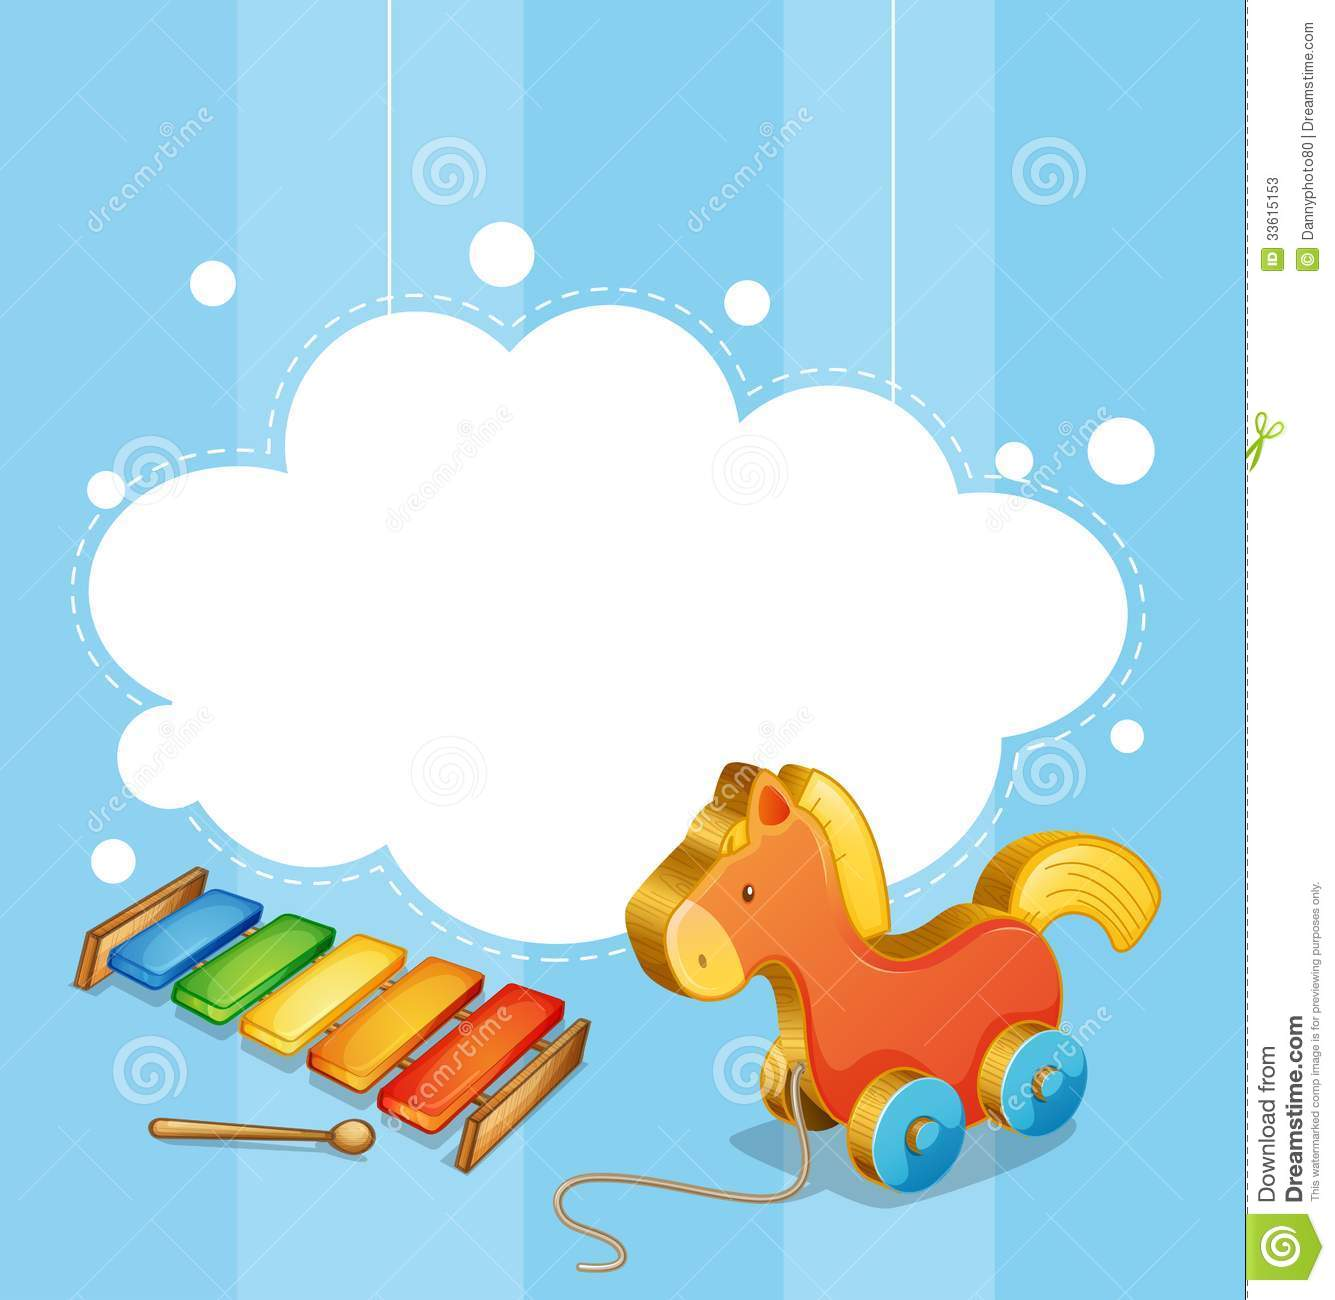 An Empty Cloud Template With A Toy Horse And A Xylophone Stock Photos ...